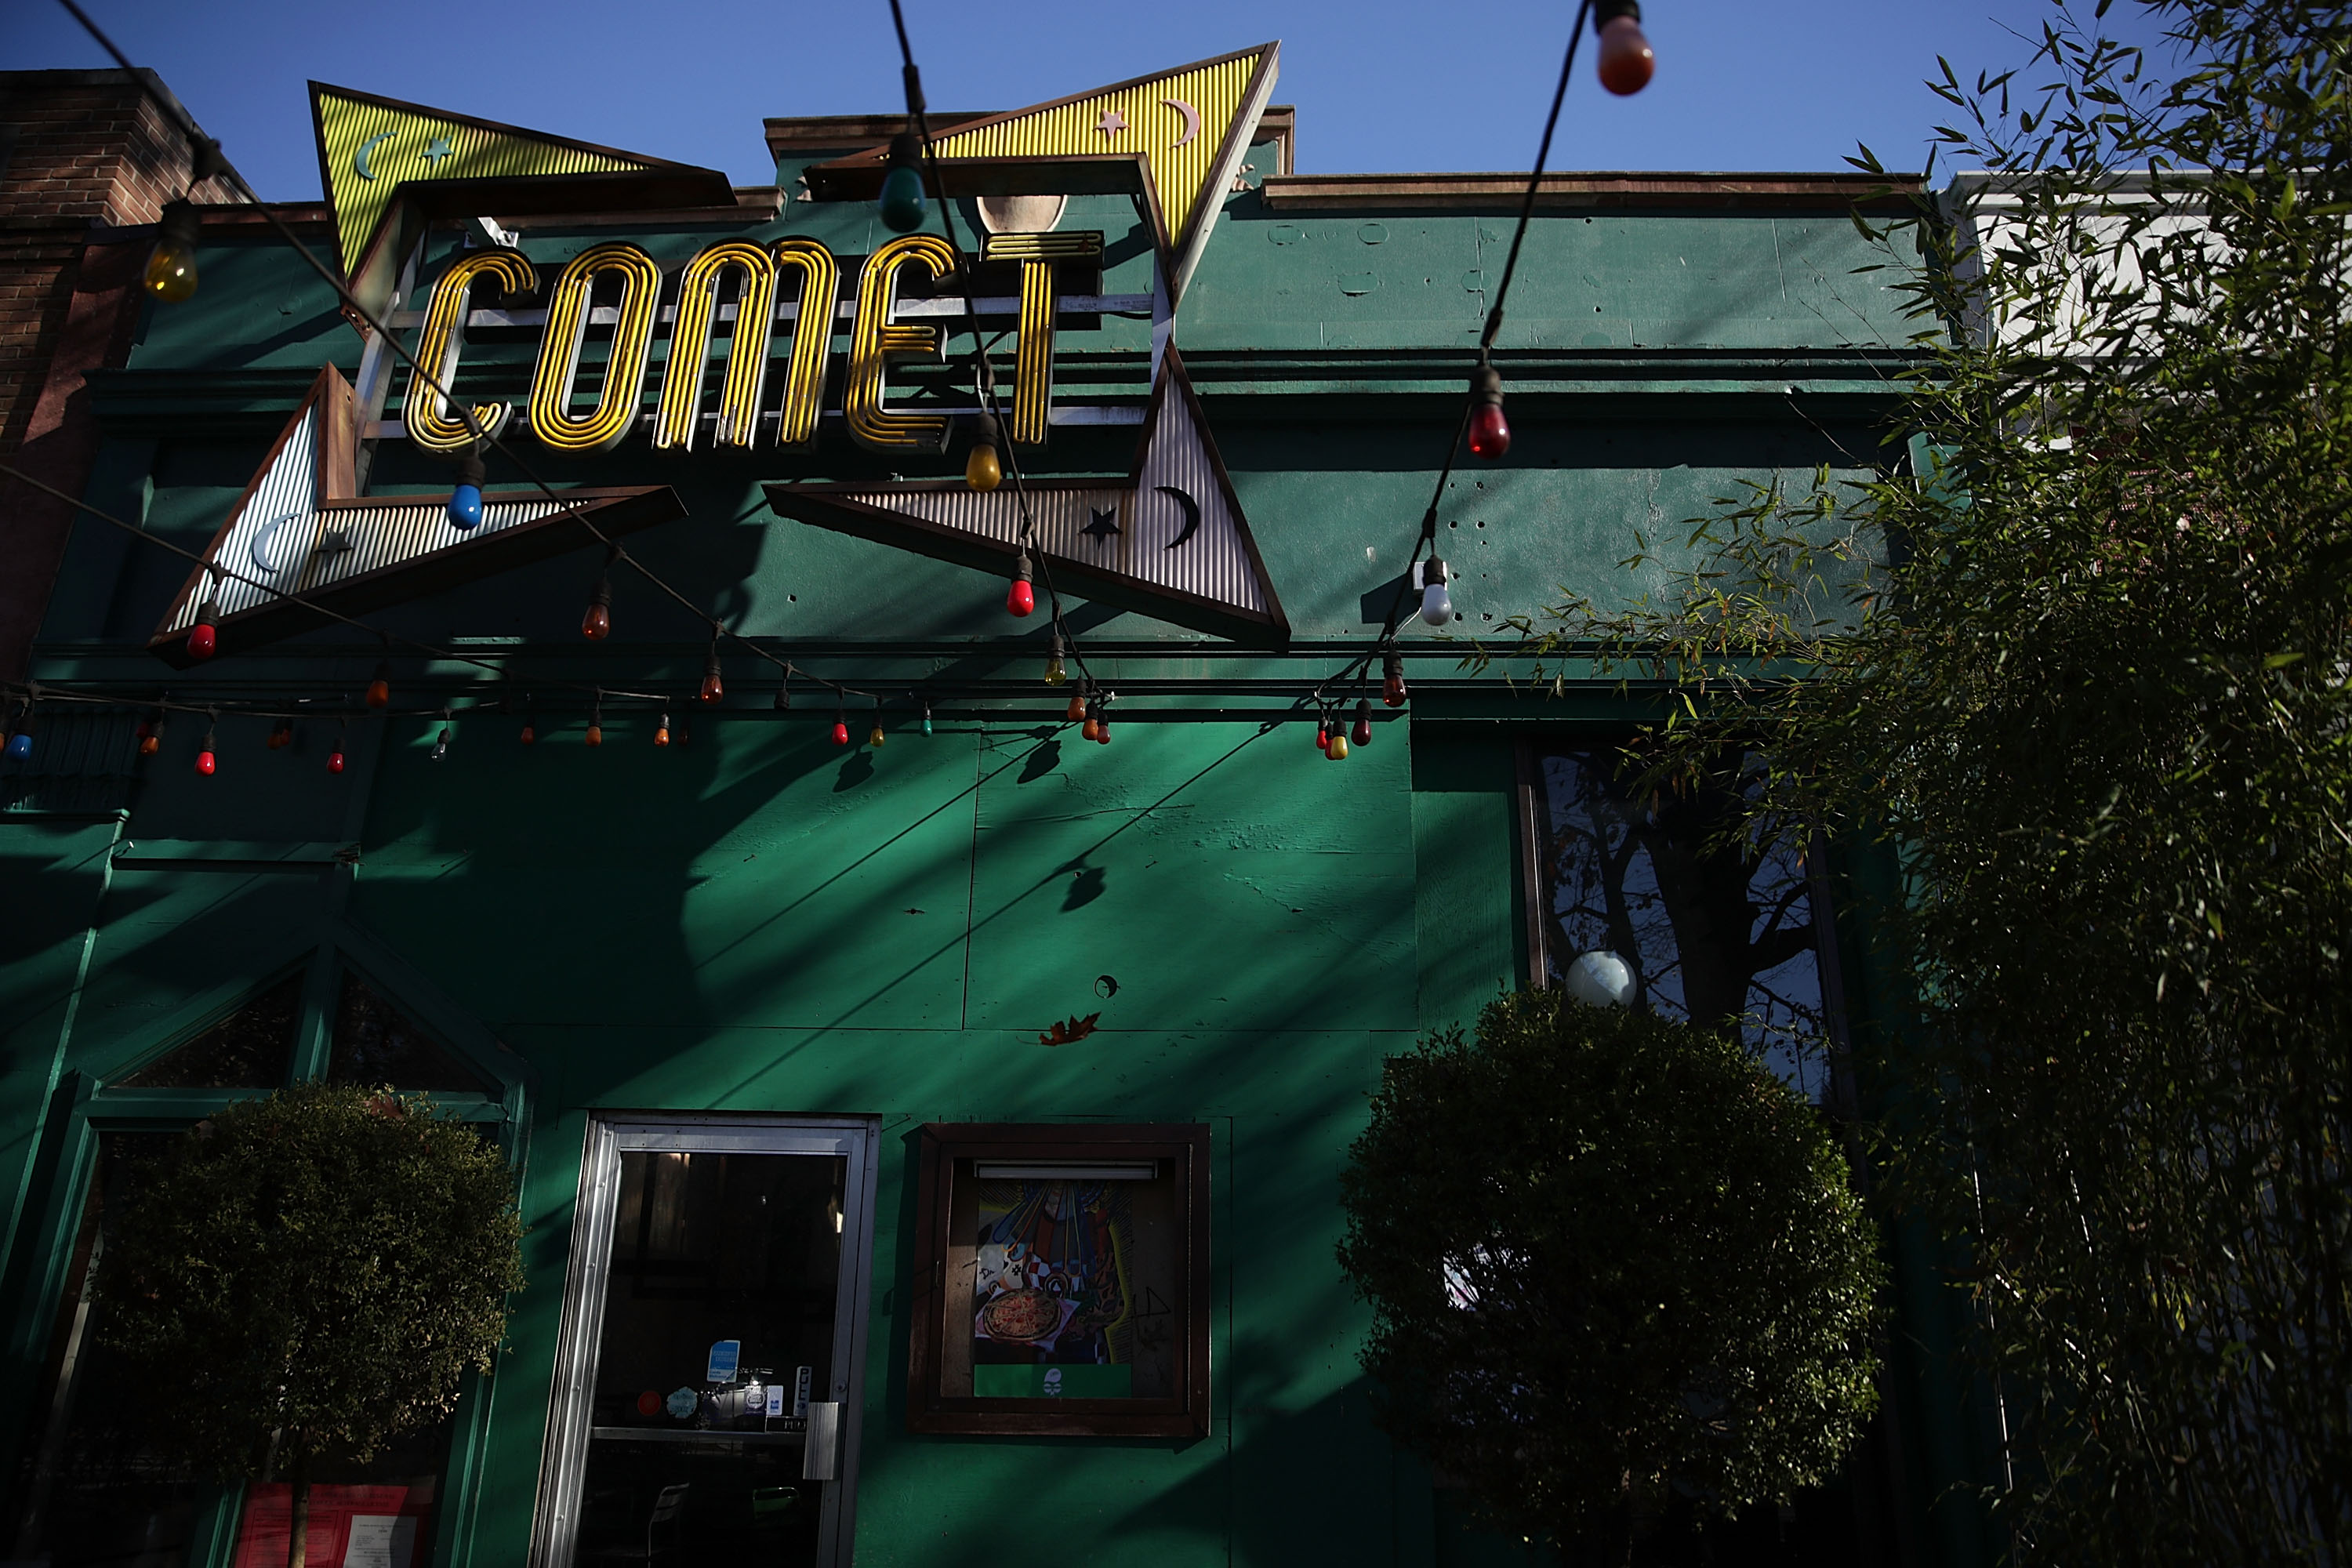 The sign and front entrance of Comet Ping Pong pizzeria are seen Dec. 5, 2016 in Washington, D.C. A man was arrested Sunday after walking into the pizzeria and discharging a rifle, claiming he was  self-investigating  an online conspiracy theory about a pedophilia ring being run by high-ranking Democrats, including Hillary Clinton.